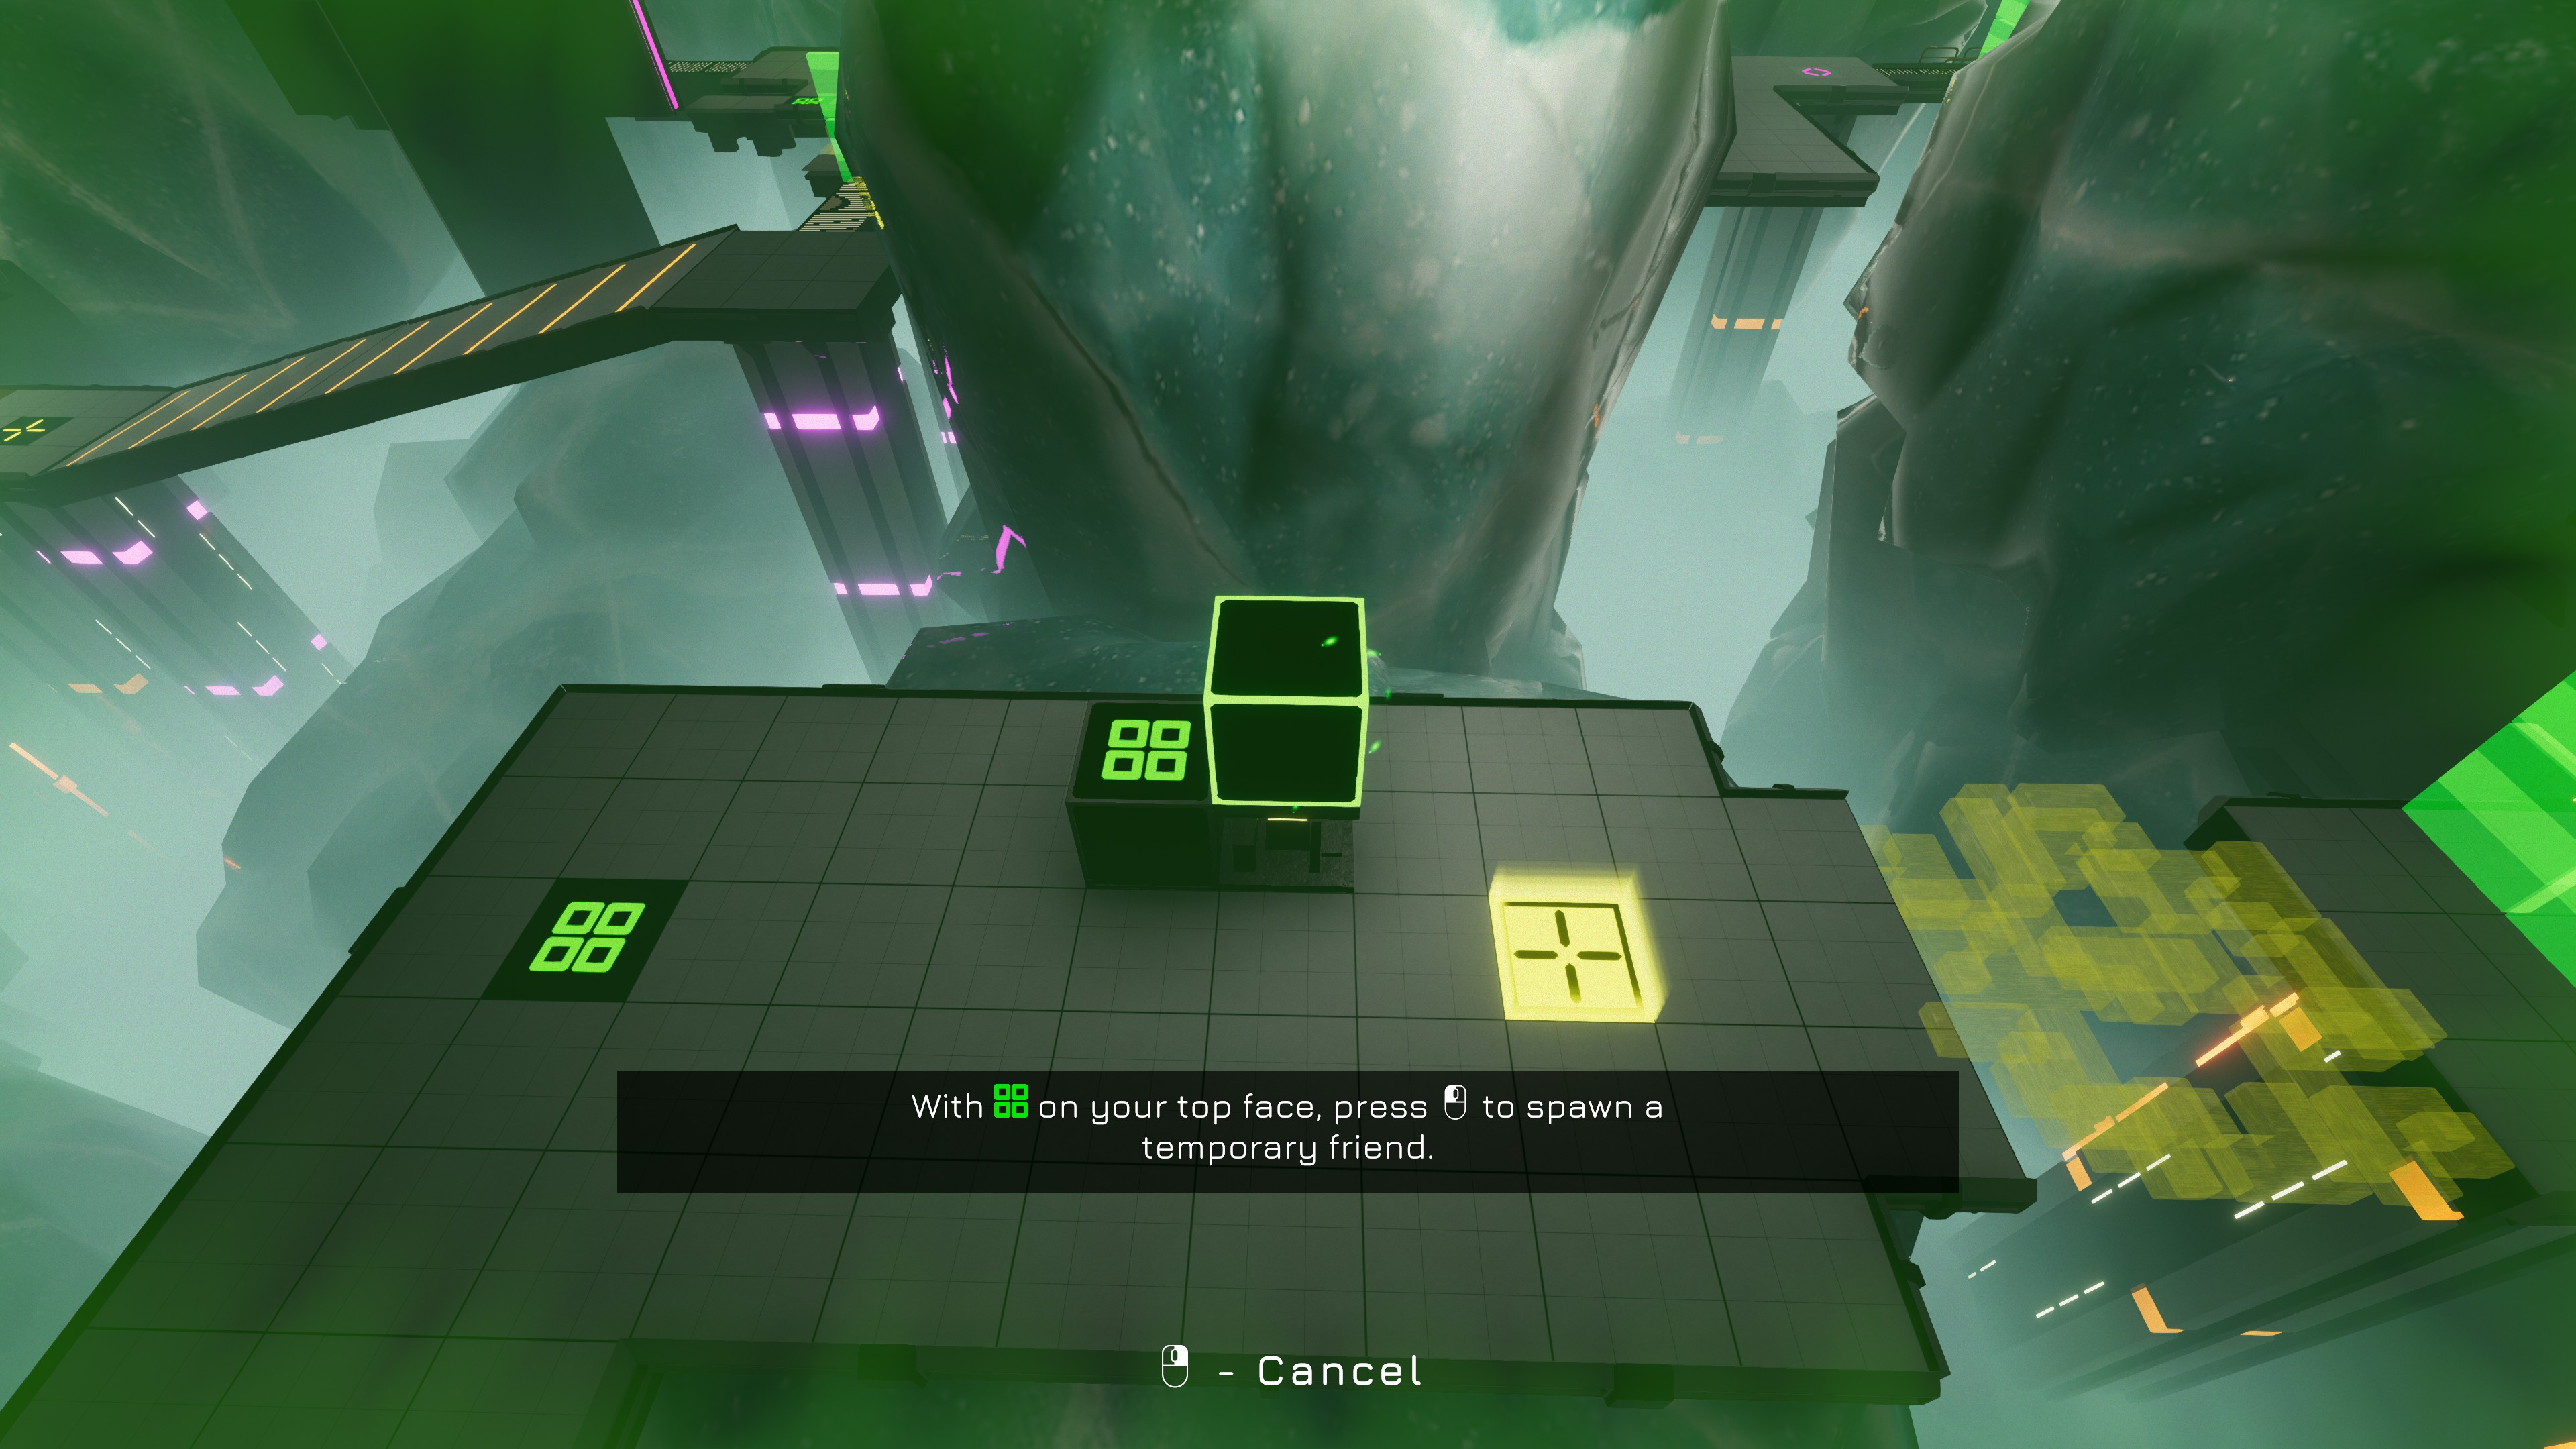 The Last Cube. With green squares on your top face, press left mouse button to spawn a temporary friend